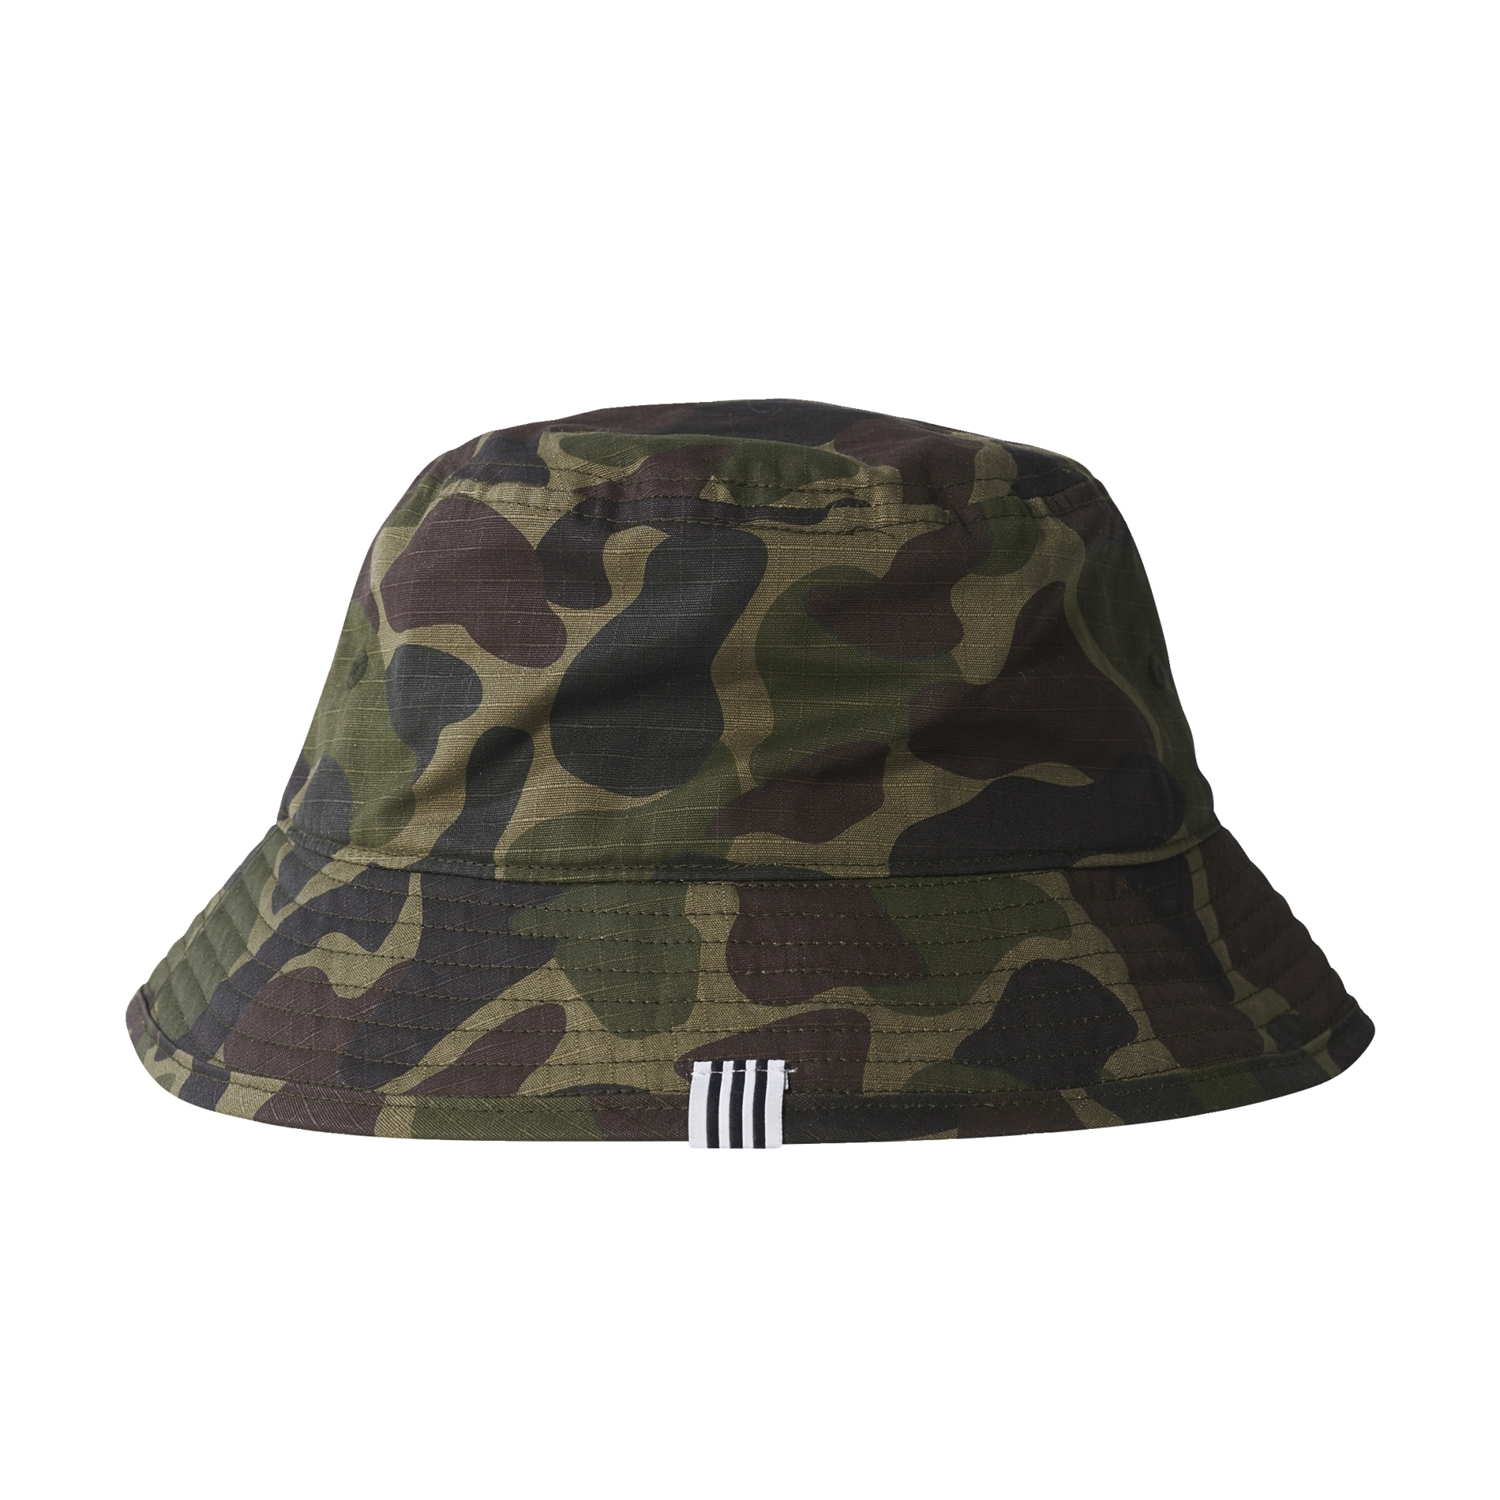 299edb3af91 ... Adidas Originals Bucket Hat Camo